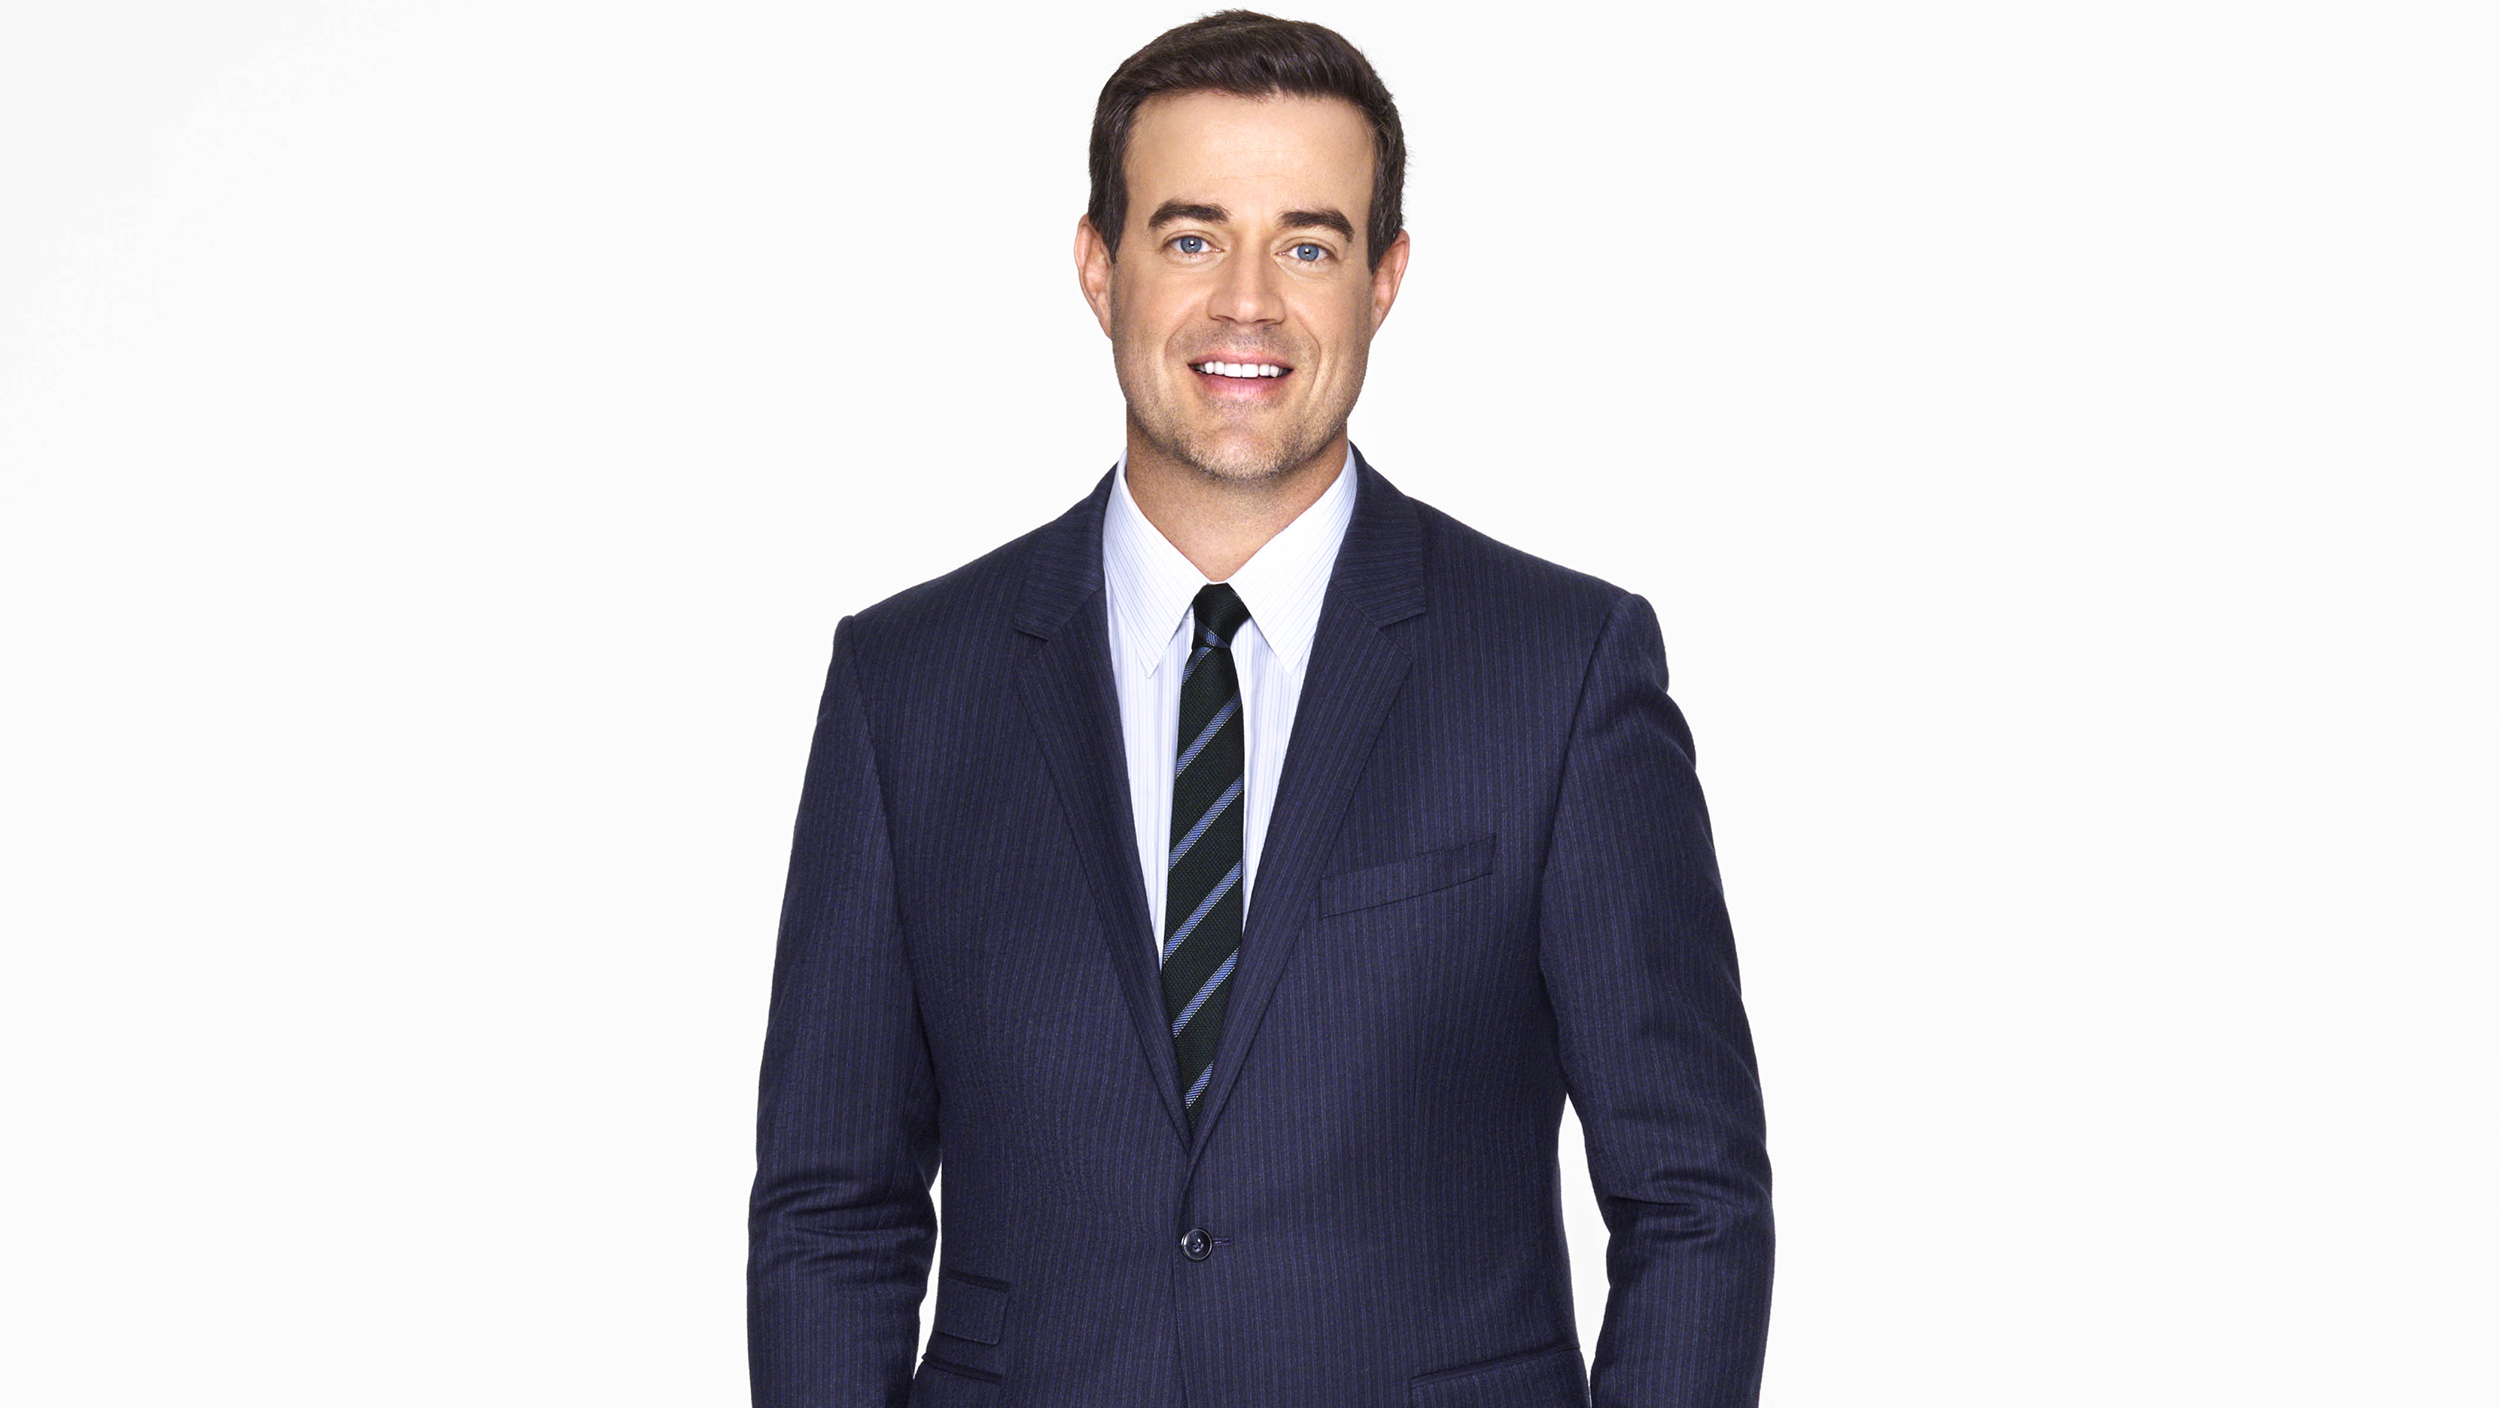 Carson Daly Pinterest: Carson Daly Height, Weight, Age And Body Measurements